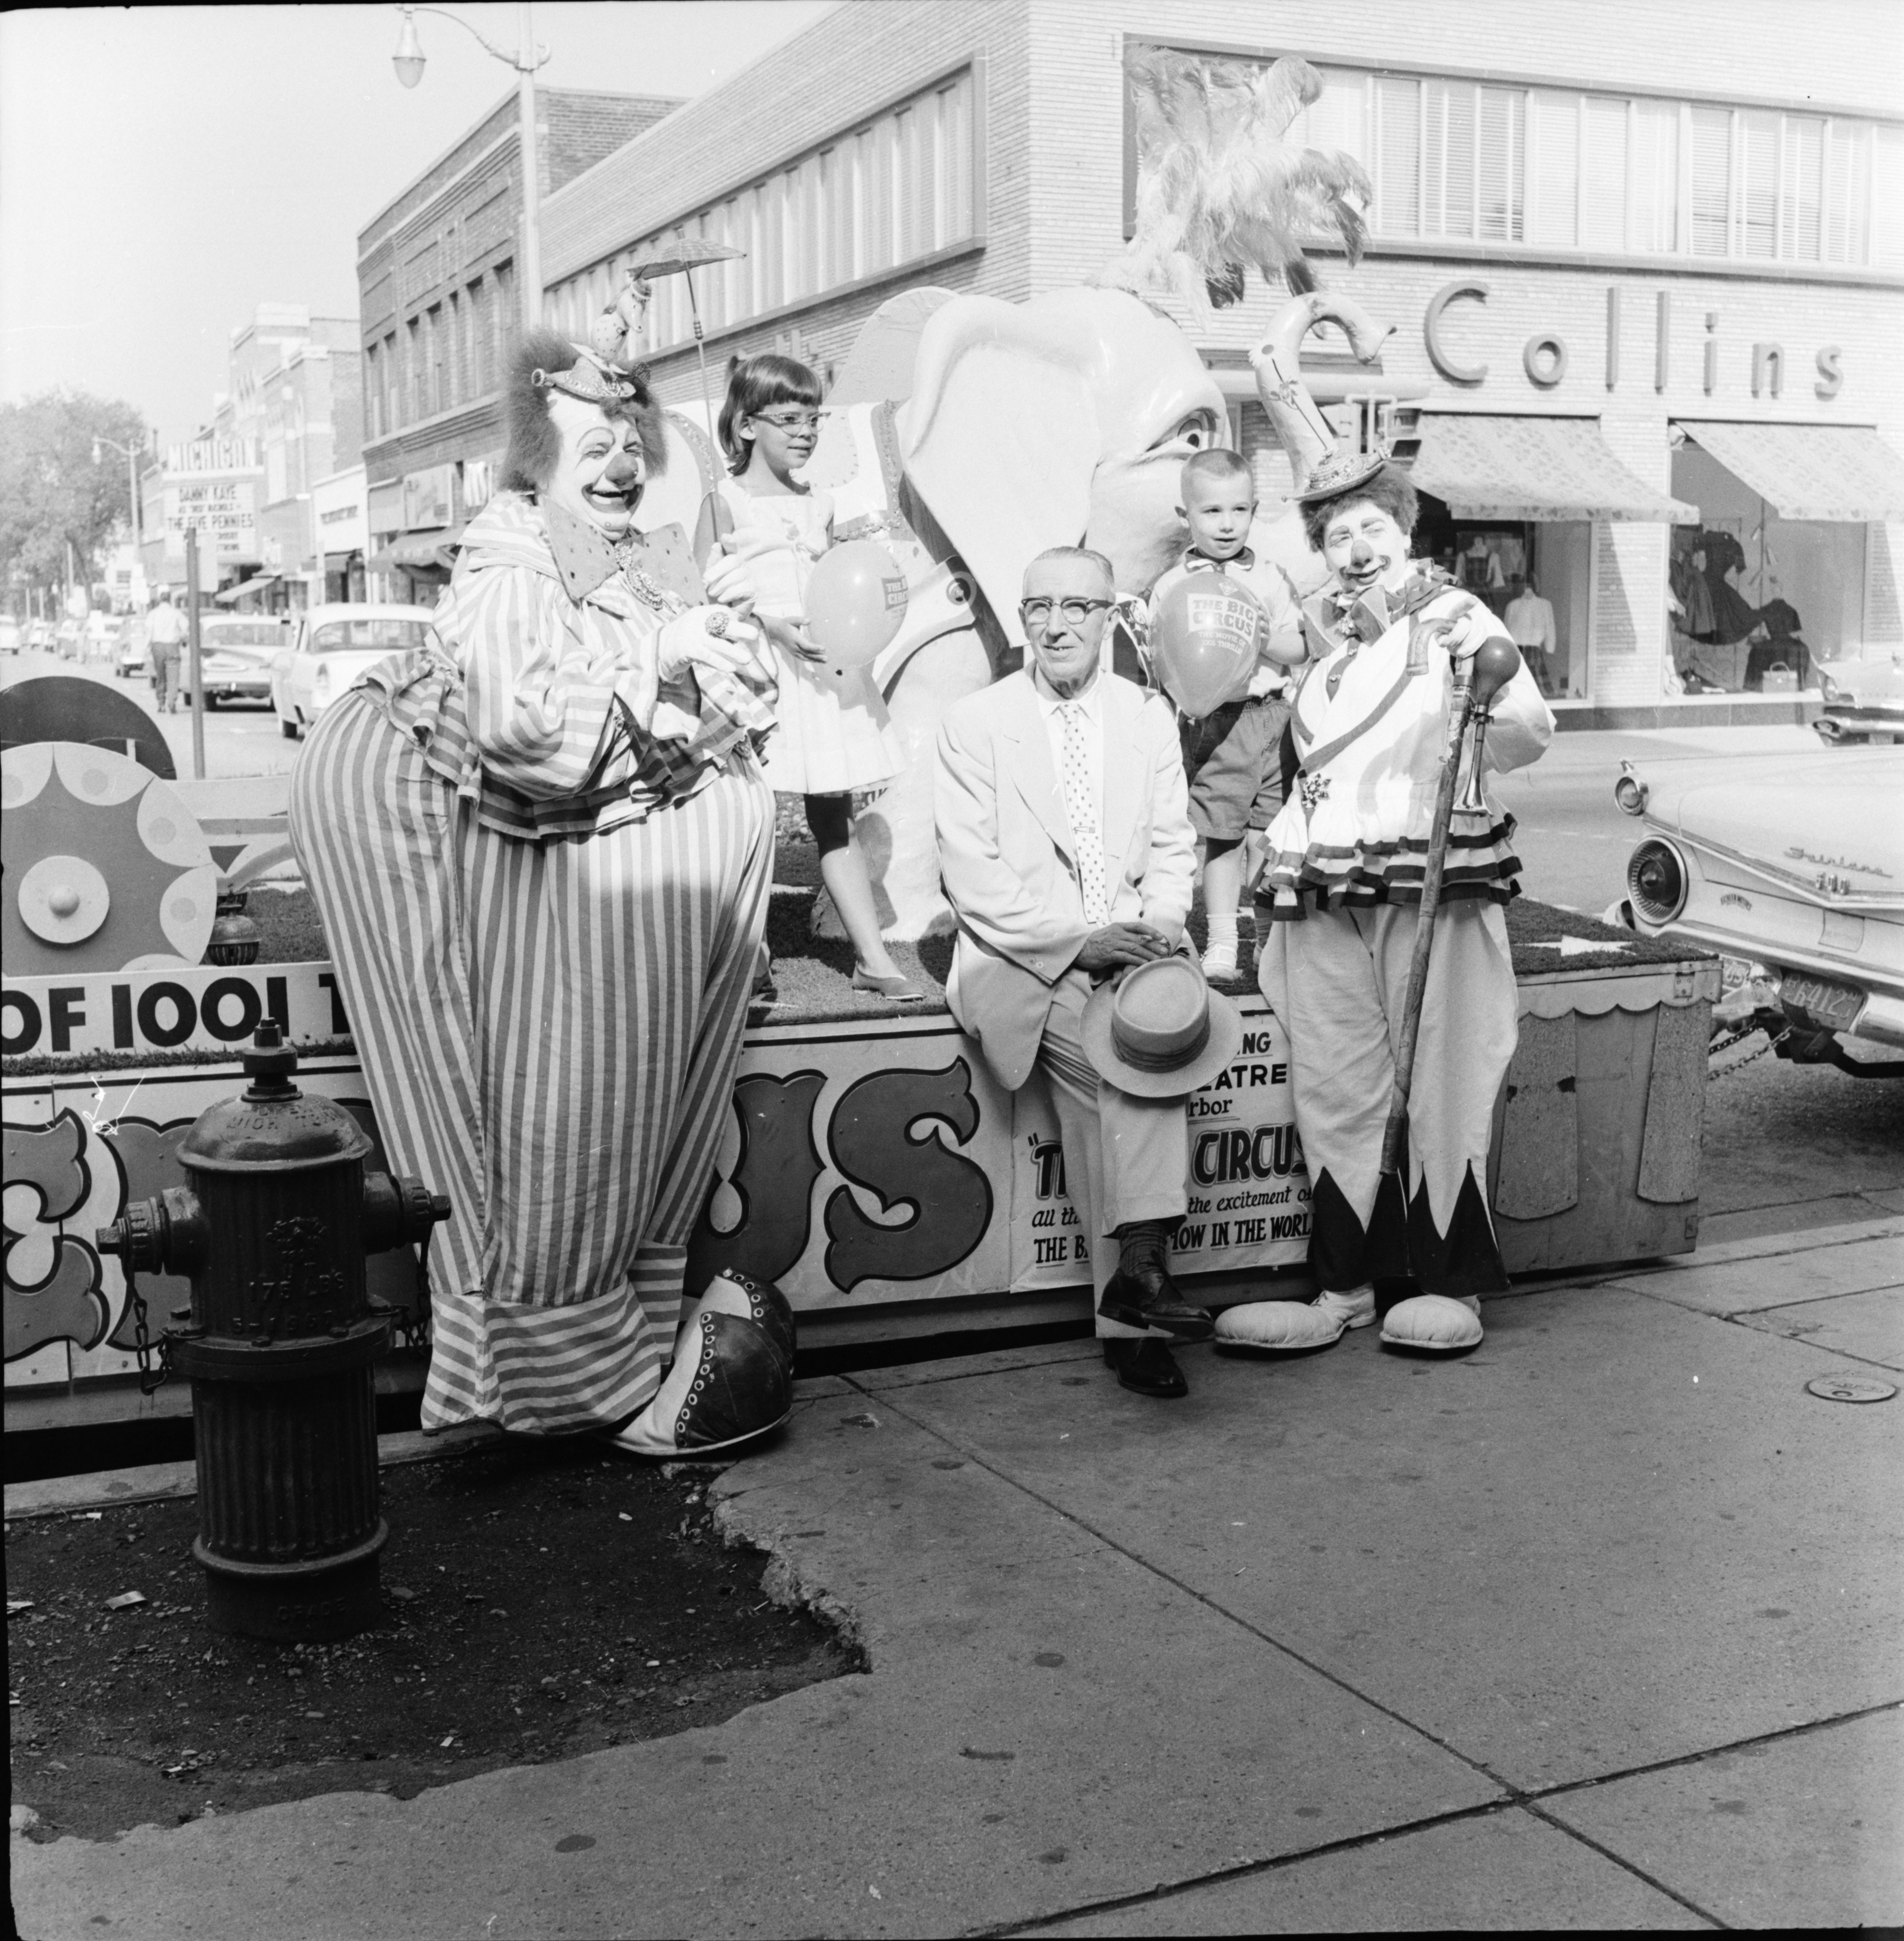 Famed clown Felix and his wife on State Street, August 1959 image